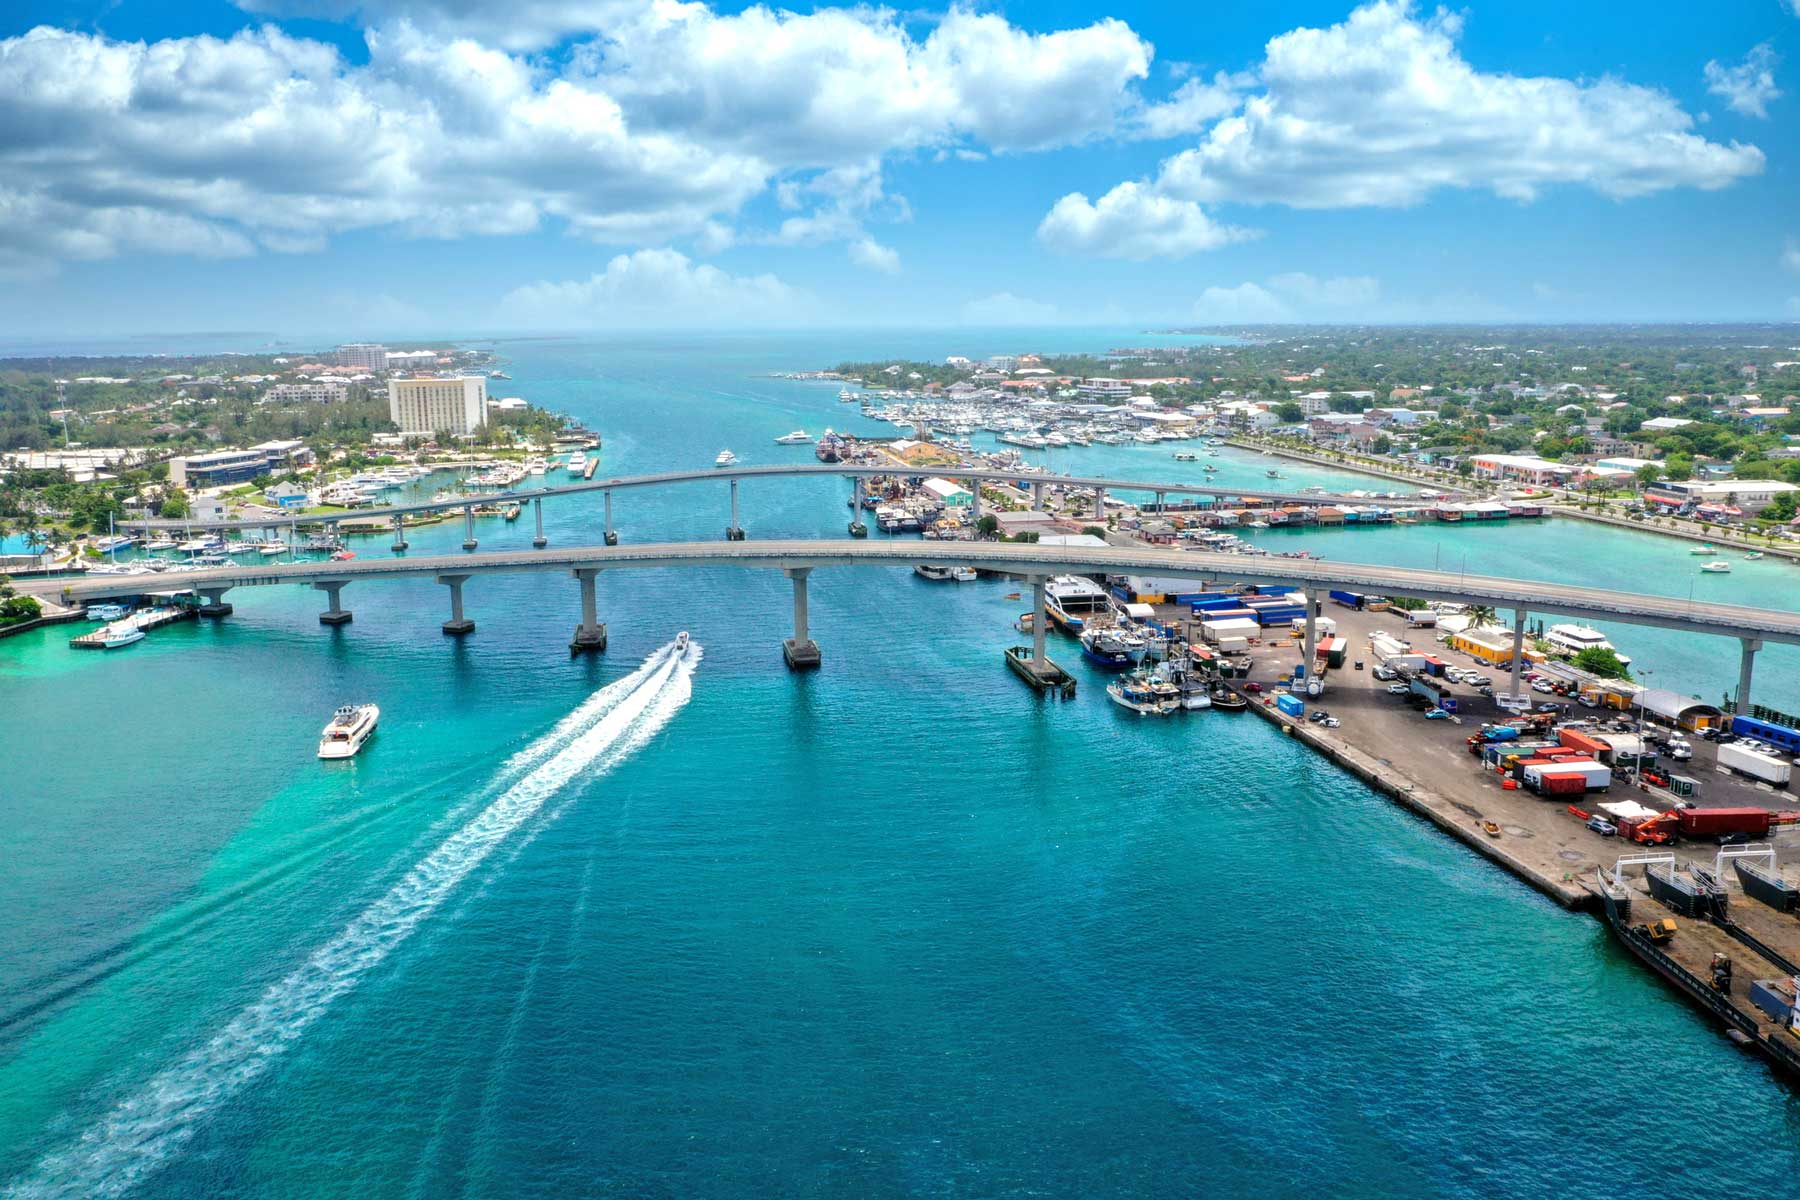 Bridges over blue water with boats in Nassau, Bahamas